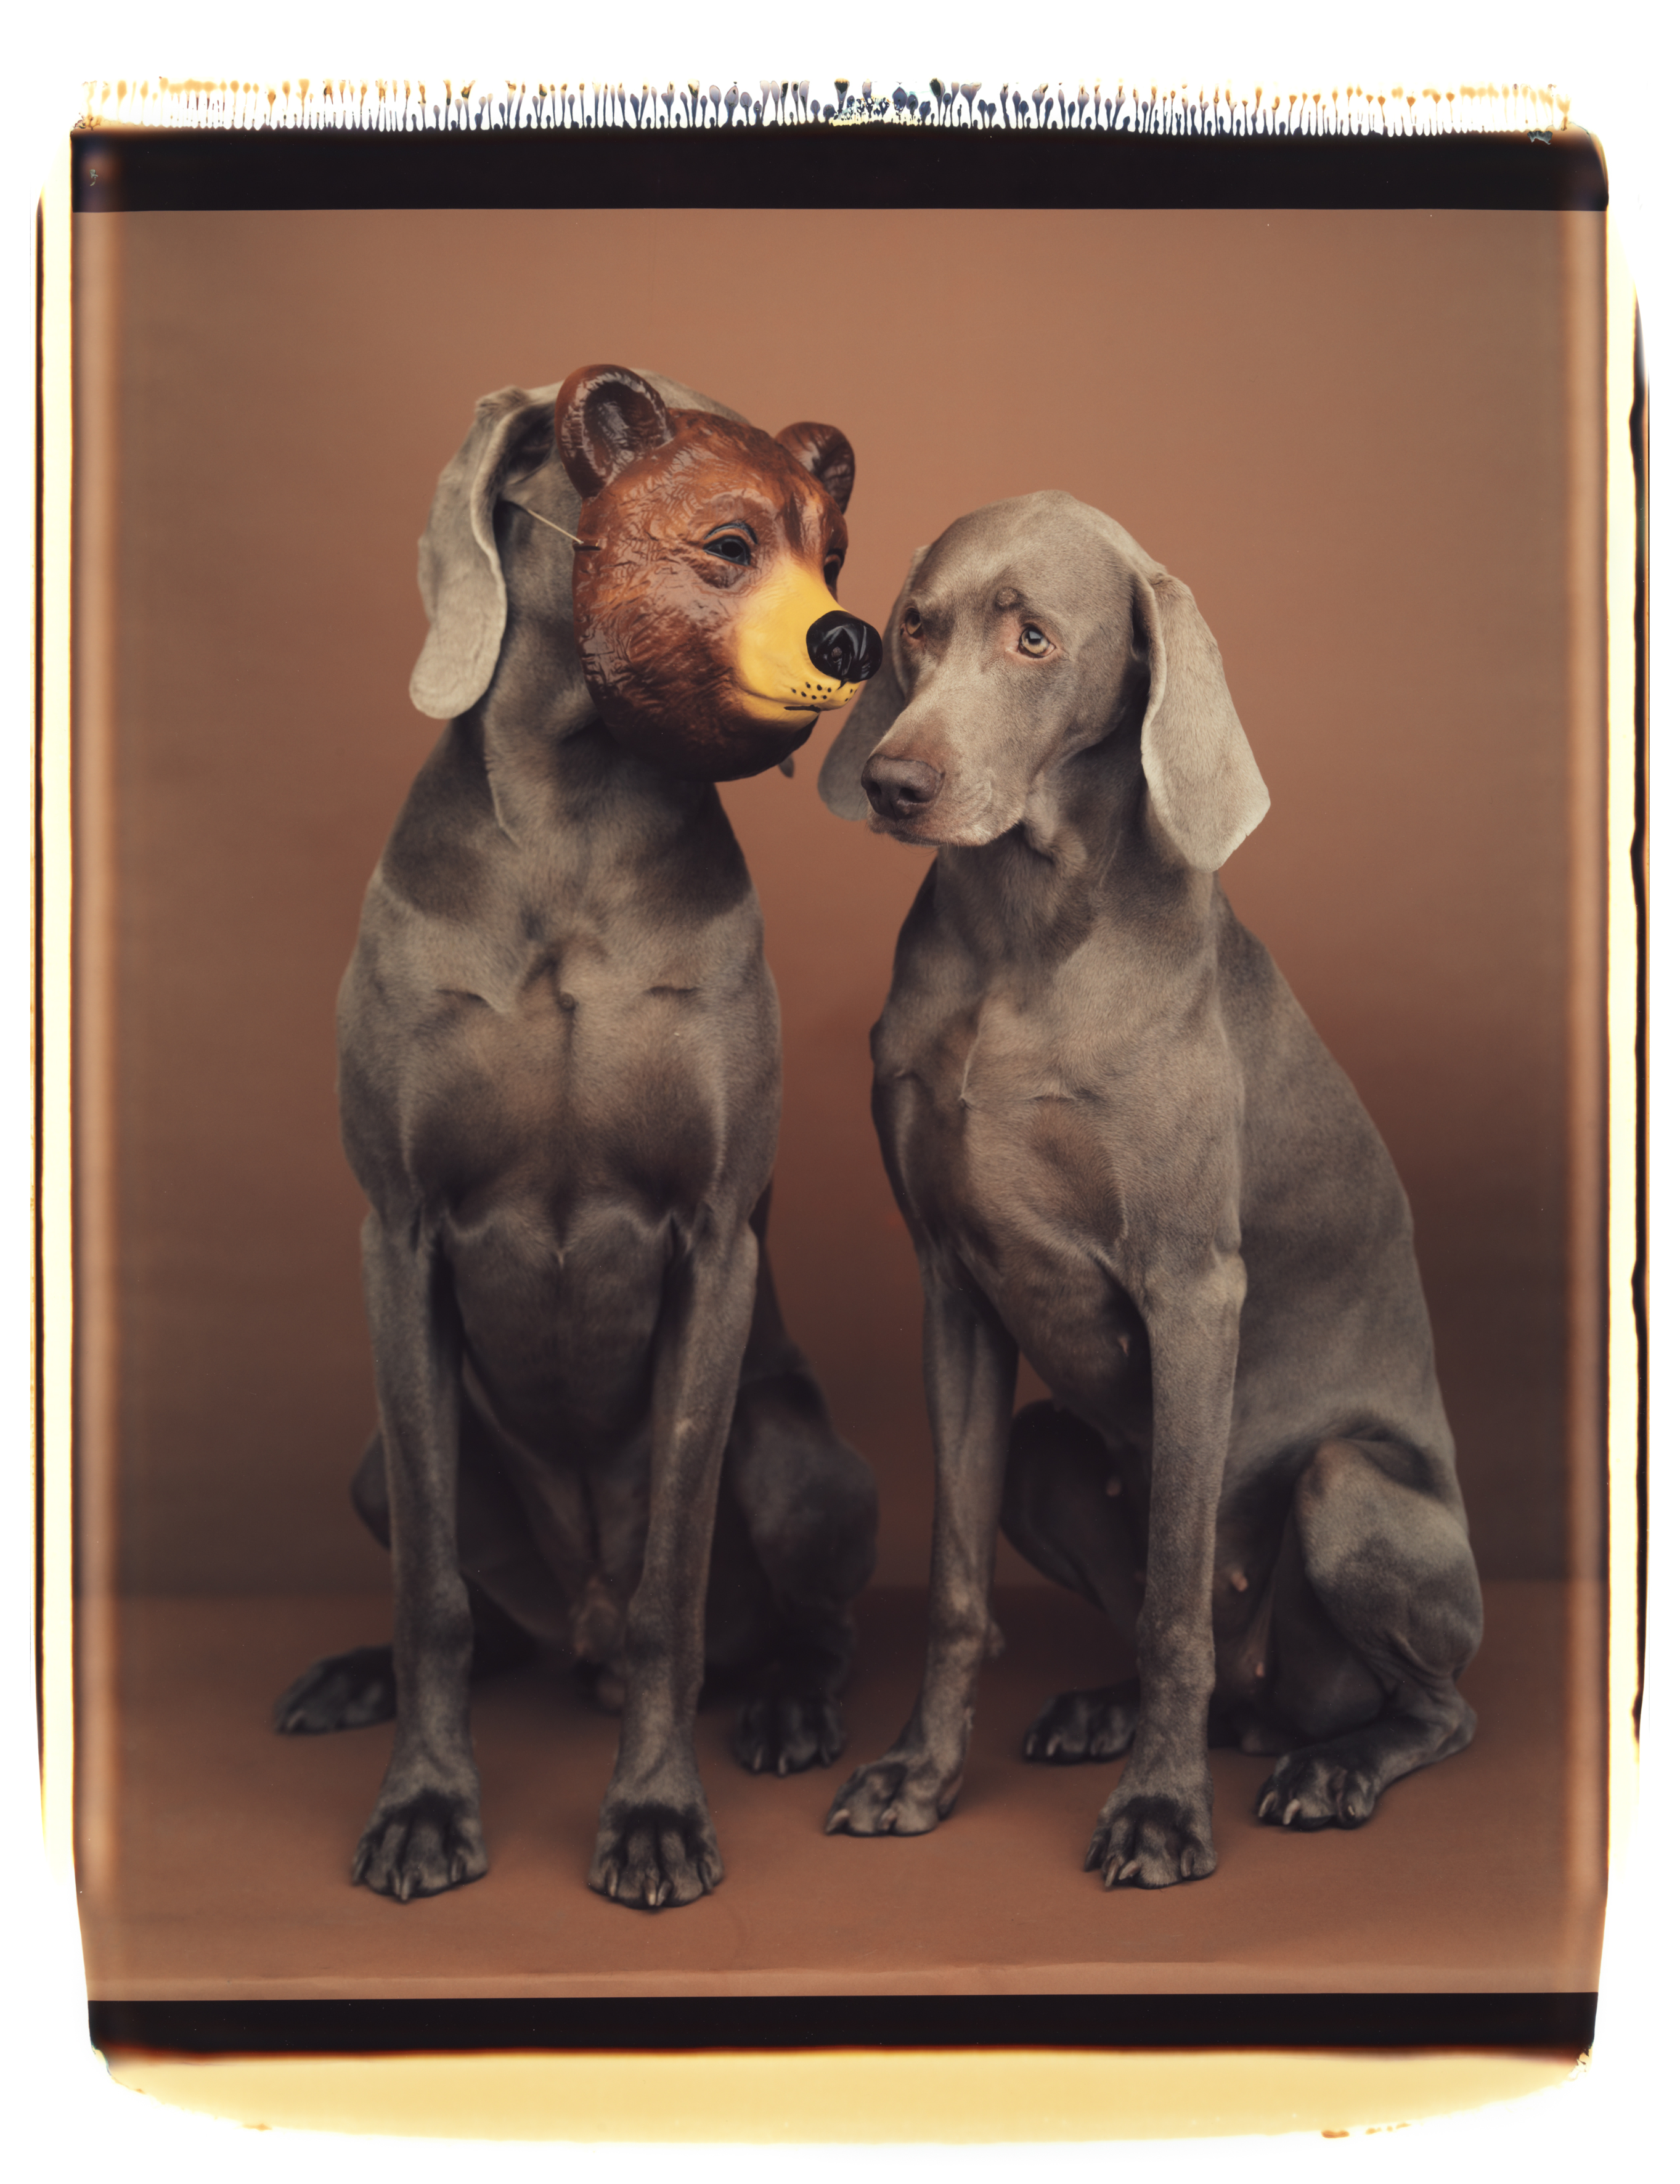 William Wegman: Secret, 1994 (Seite 29) © William Wegman / courtesy Schirmer/Mosel